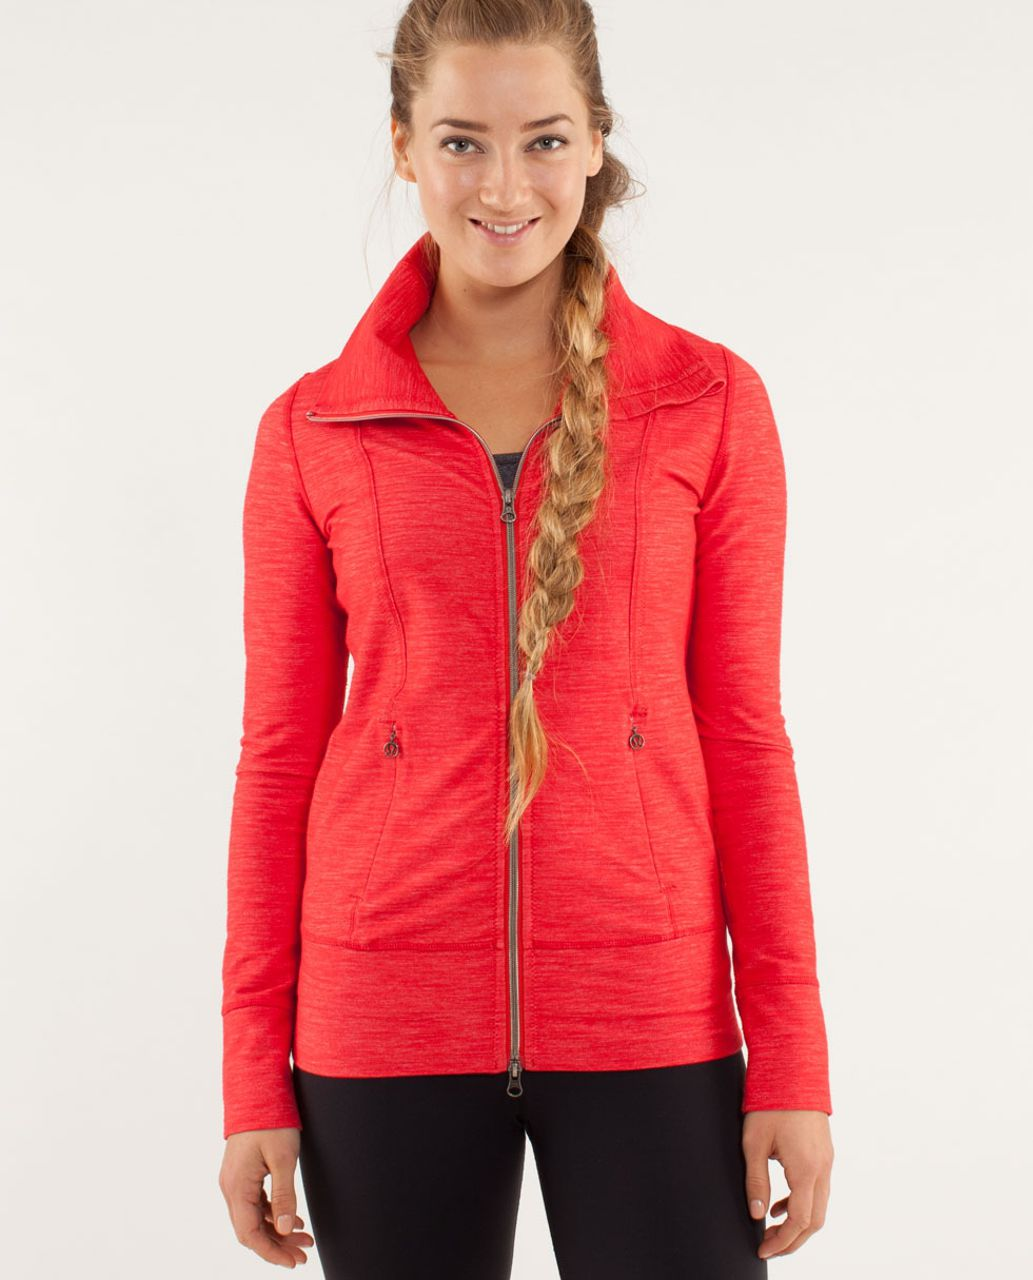 bc2a1564d99 Lululemon Daily Yoga Jacket - Reversible Slub Denim Love Red - lulu fanatics